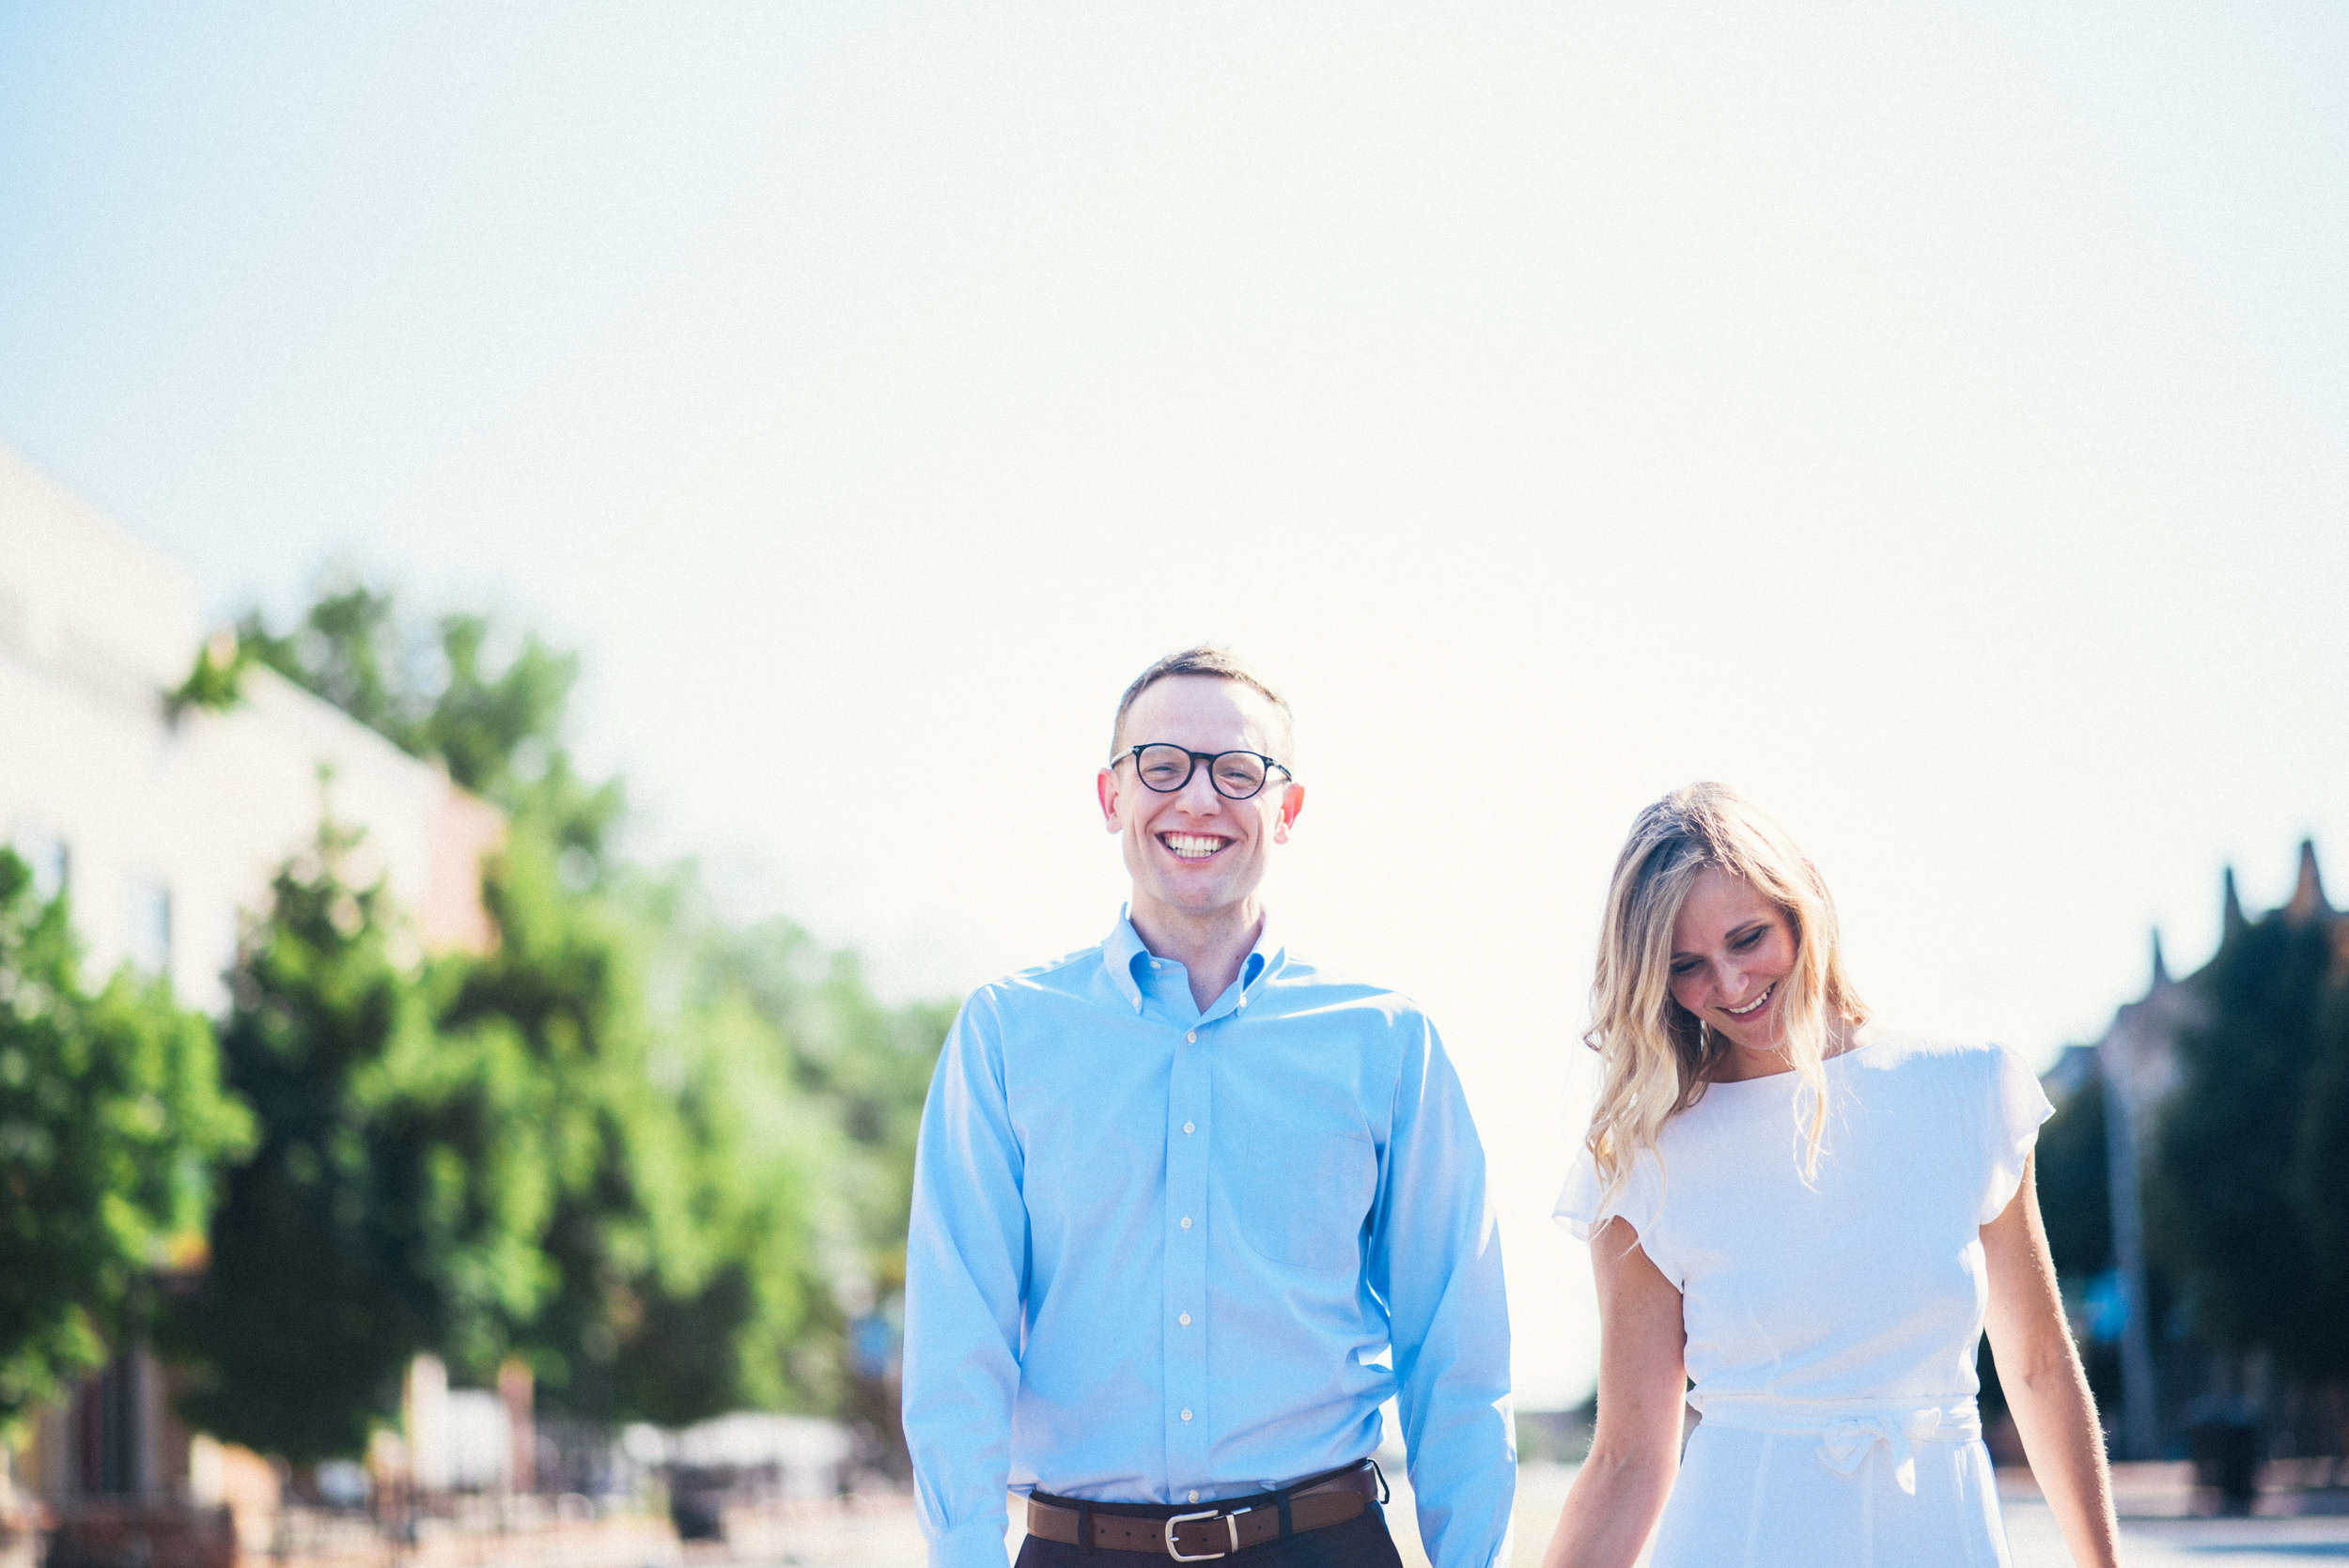 taryn-and-jackson-engagement-save-the-date (34 of 219).jpg